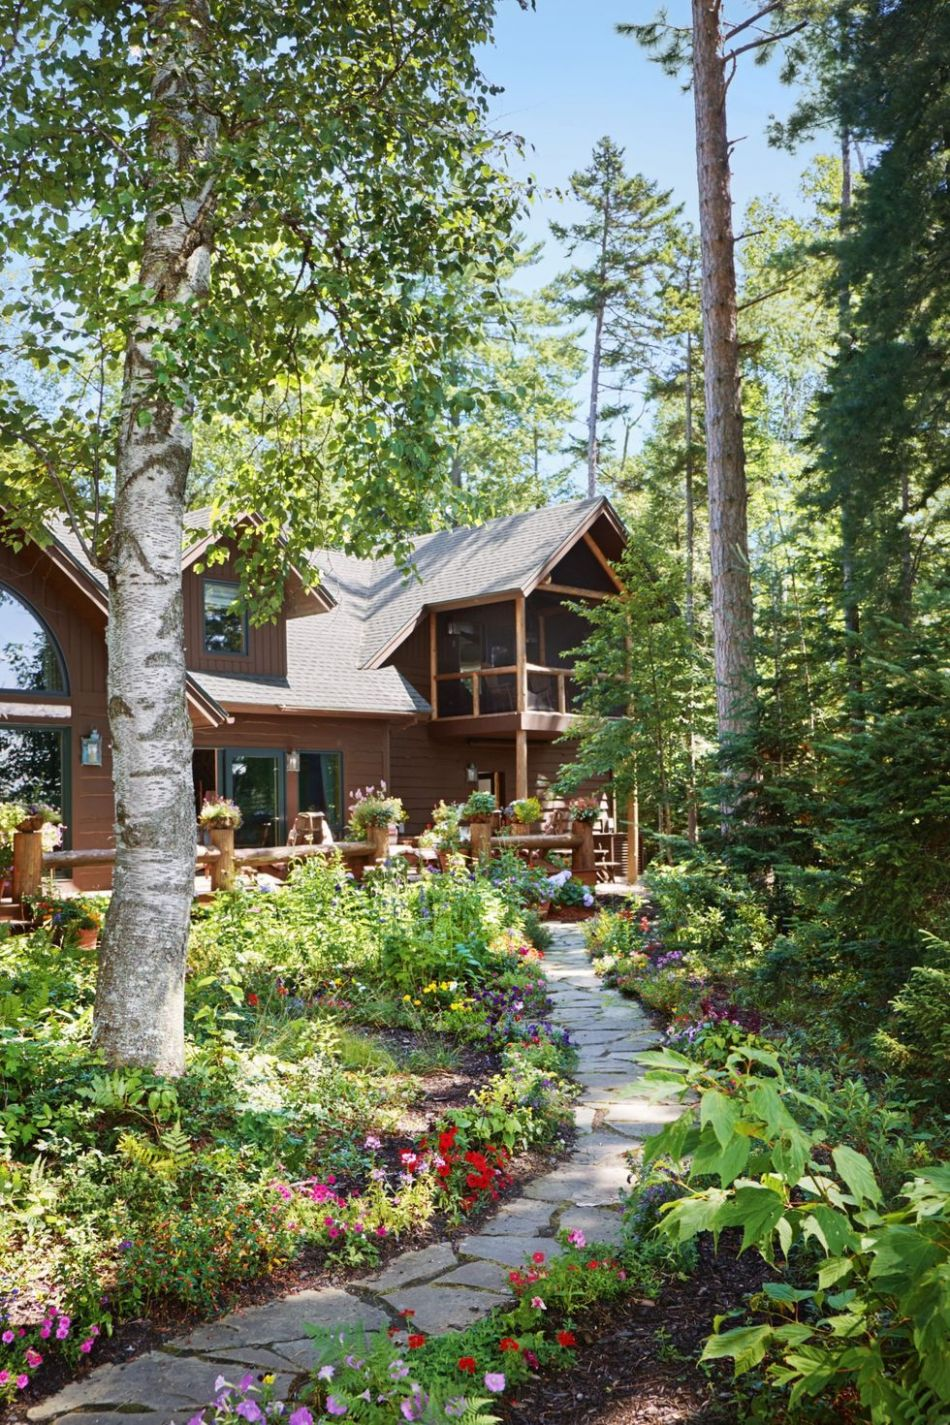 11 Best Front Yard and Backyard Landscaping Ideas - Landscaping ...